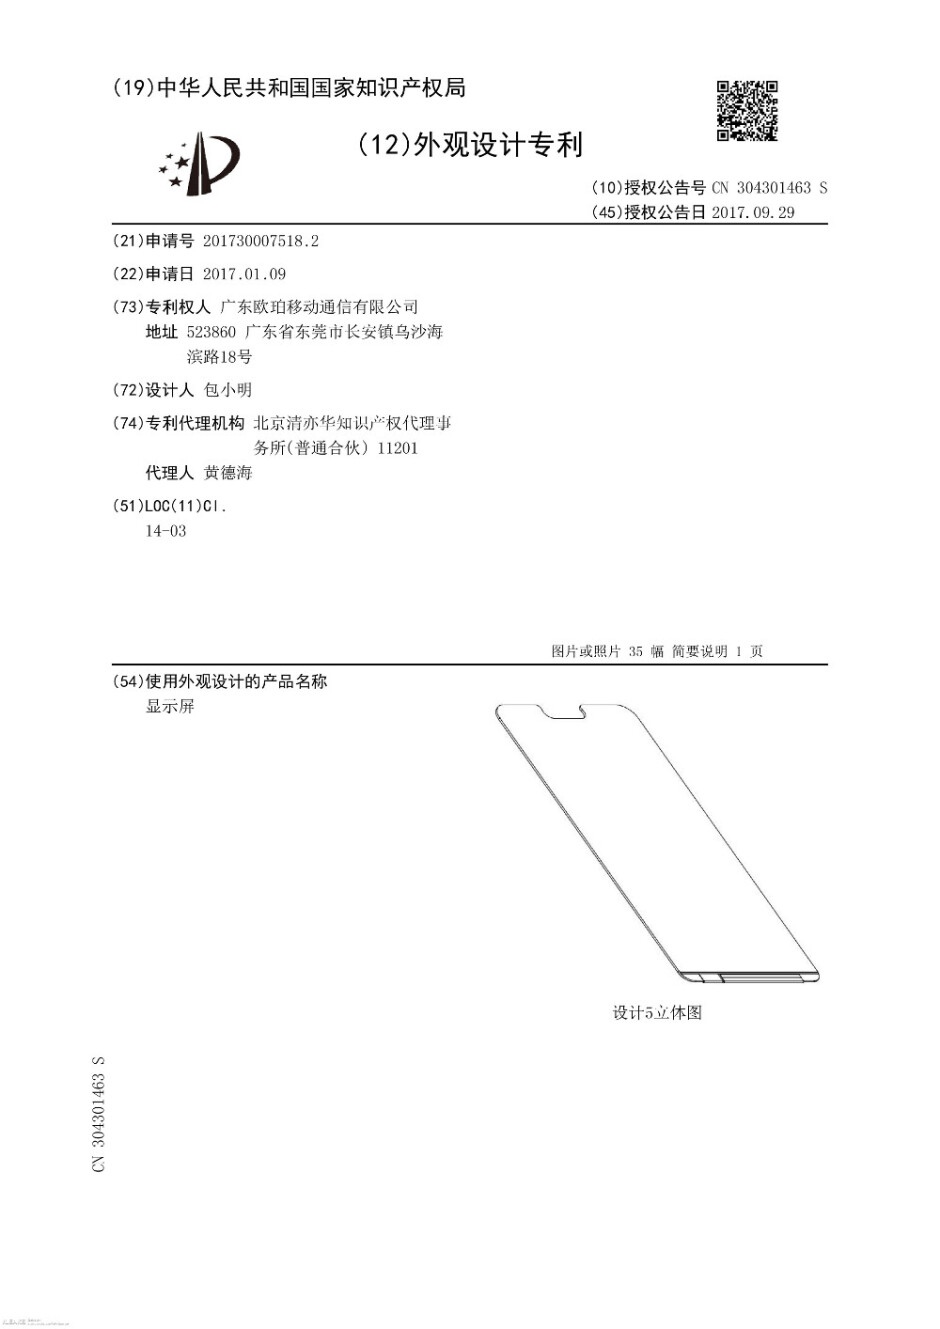 Supposed Oppo patent for screen with a notch - Oppo R13 leak: check out this all-black iPhone X... errrr Android phone!